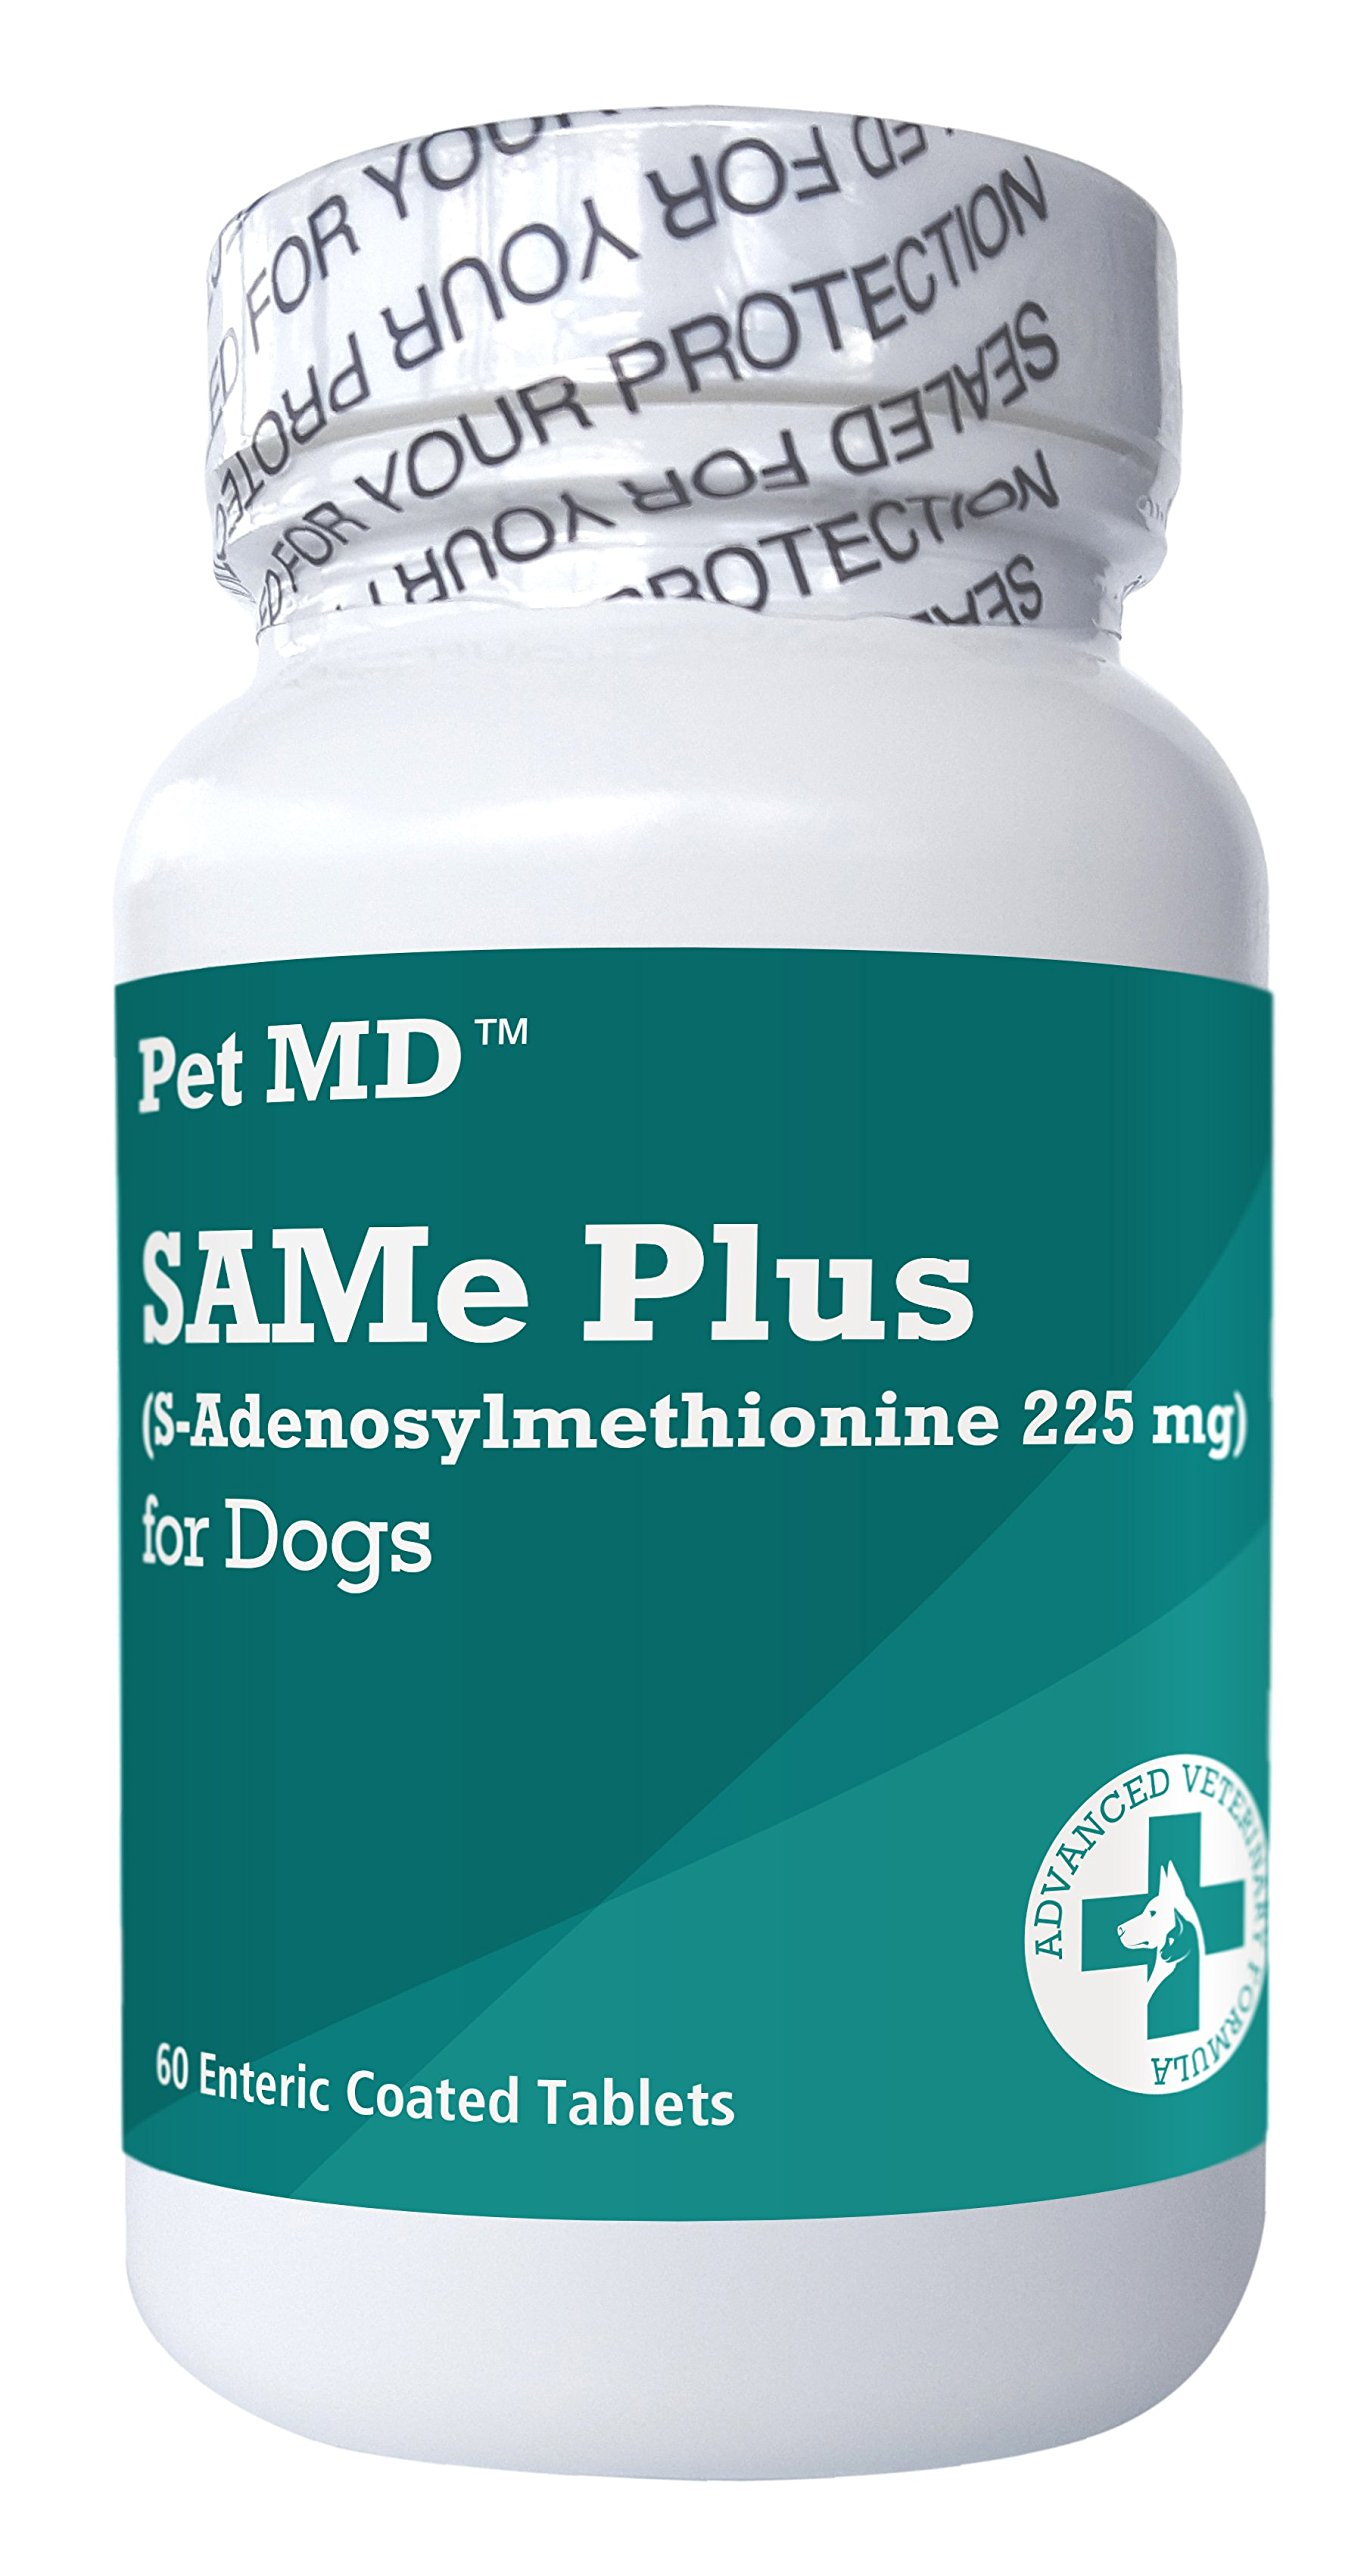 Pet MD SAMe Plus S-Adenosyl for Dogs 225 MG Hepatic Liver Supplement and Cognitive Support - 60 Count by Pet MD